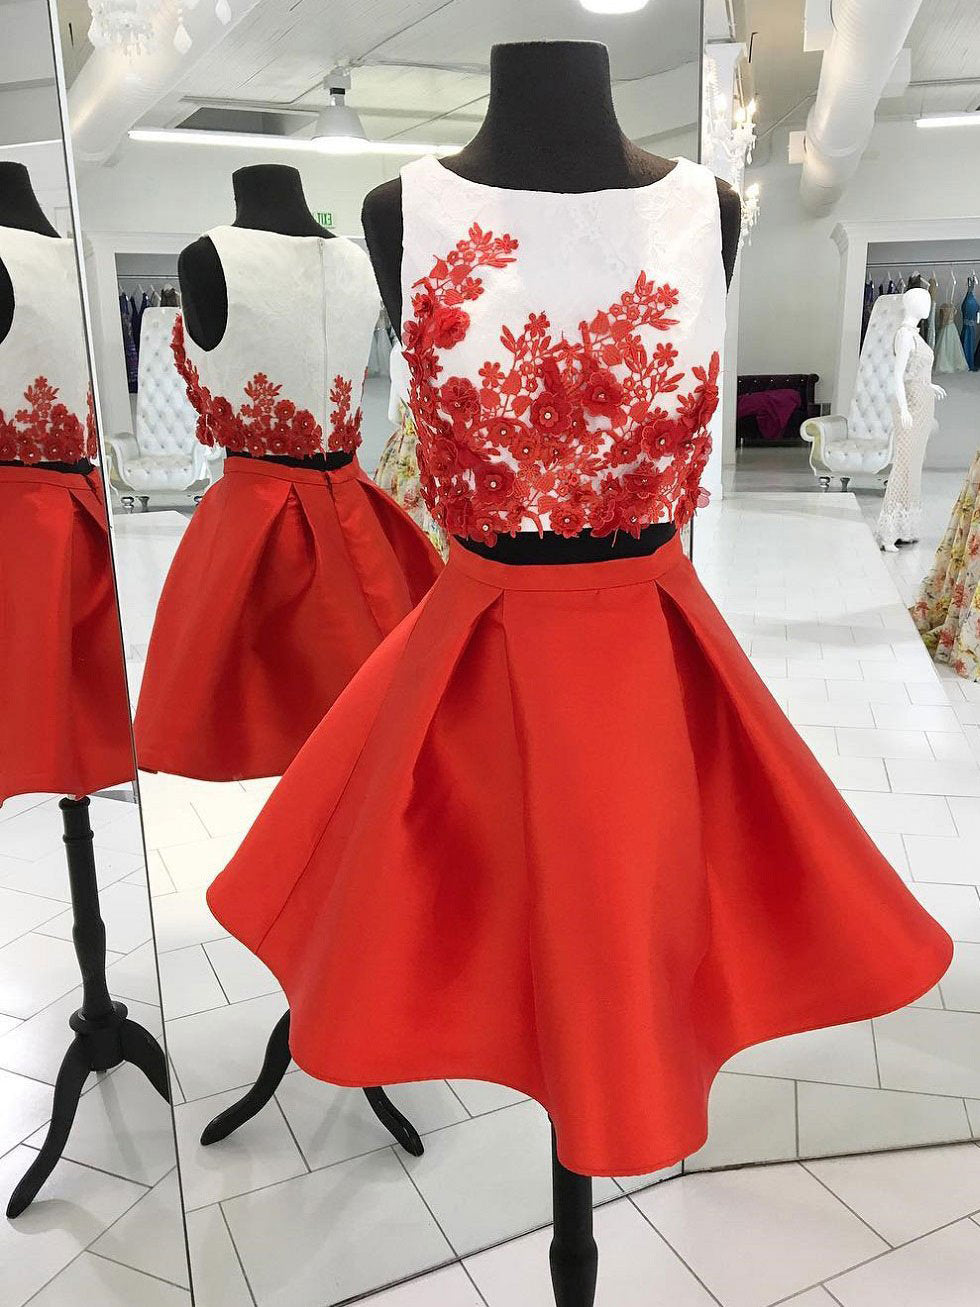 Two Piece Red Homecoming Dresses Lace A-line Bateau Short Prom Dress Party Dress JK805|Annapromdress